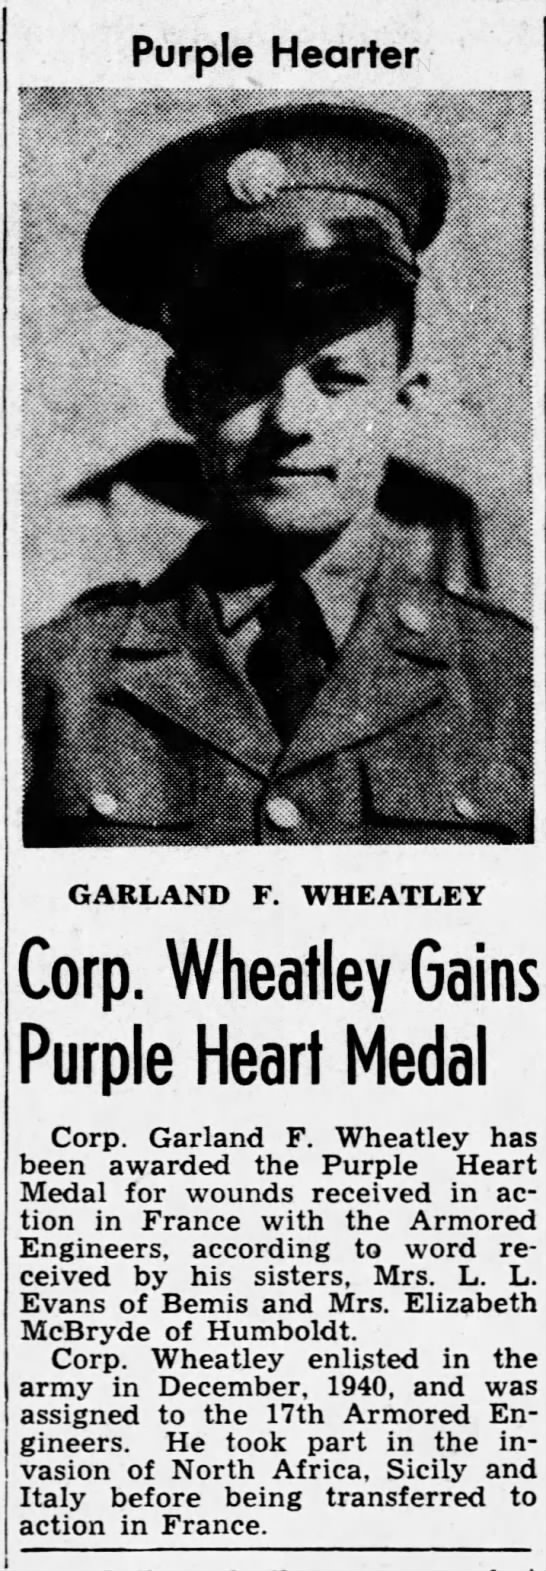 Garland F Wheatley - The Jackson Sun (Jackson, Madison, Tennessee, United States of America) · 6 Sep 1944